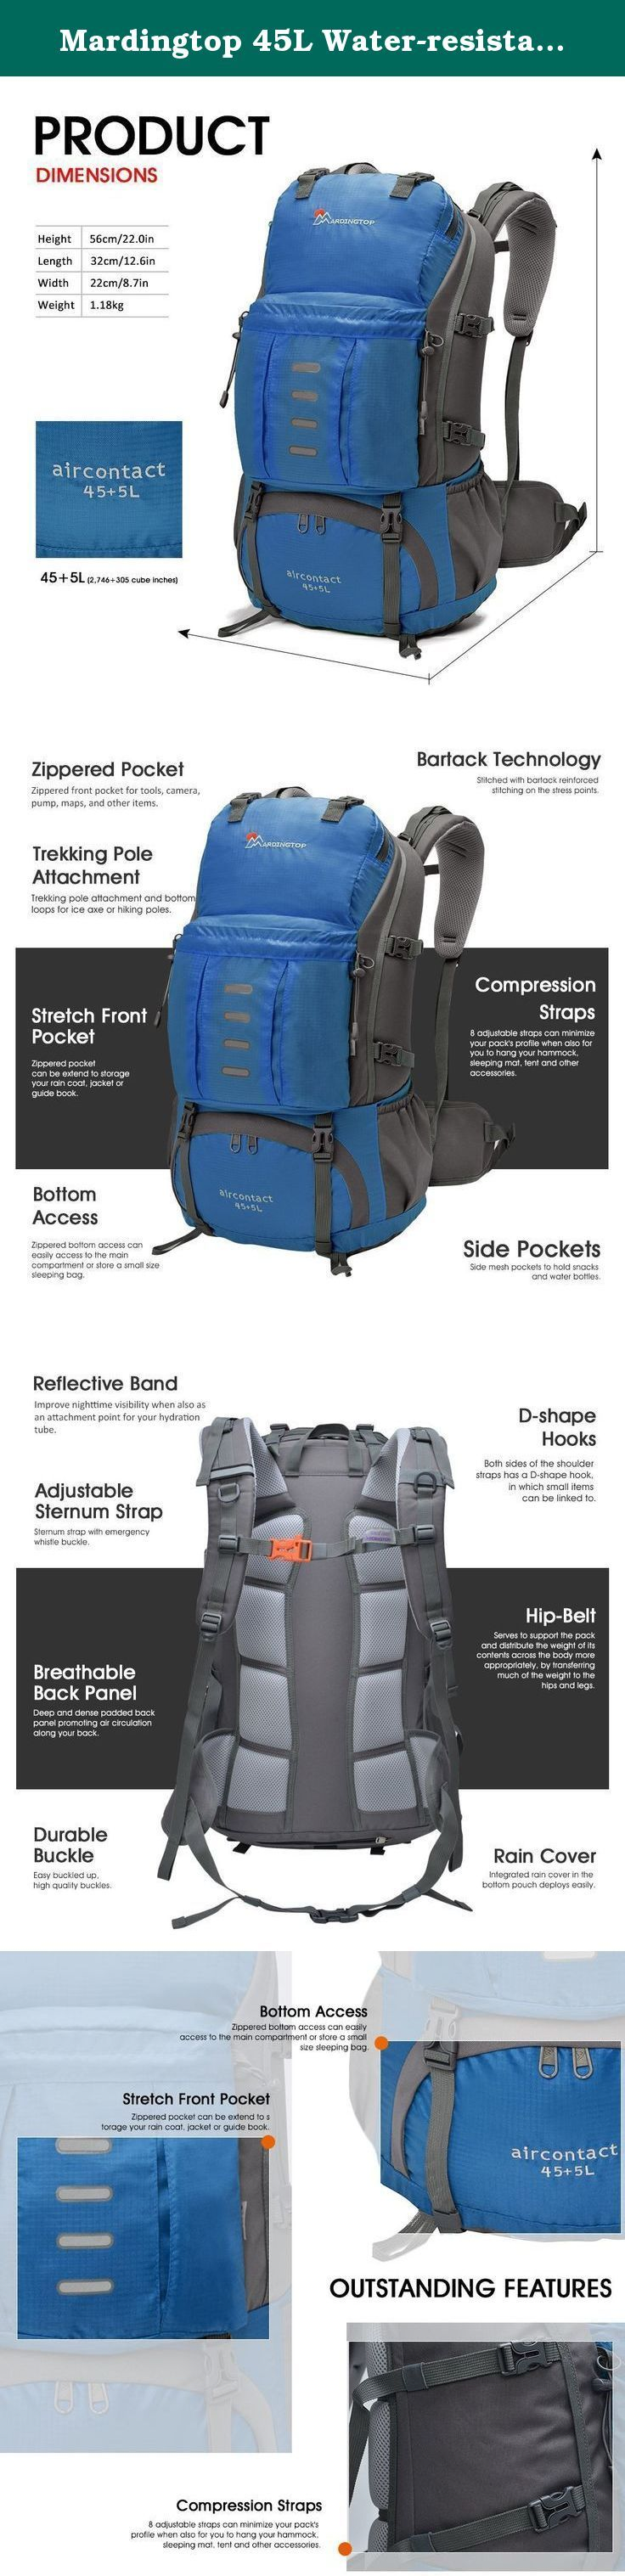 Mardingtop 45L Water-resistant Hiking Daypack/Camping Backpck/Travel Daypack/Casual Backpack Including Rain Cover for Outdoor Climbing-5901Gray. Features Capacity: 1.8 adjustable straps can minimize your pack's profile when also for you to hang your hammock, sleeping mat, tent and other accessories. 2.Trekking pole attachment and bottom loops for ice axe or hiking poles. Bearing System: 3.Adjustable sternum strap 4.Durable Buckle Padded and breathable mesh back panel and shoulder straps...